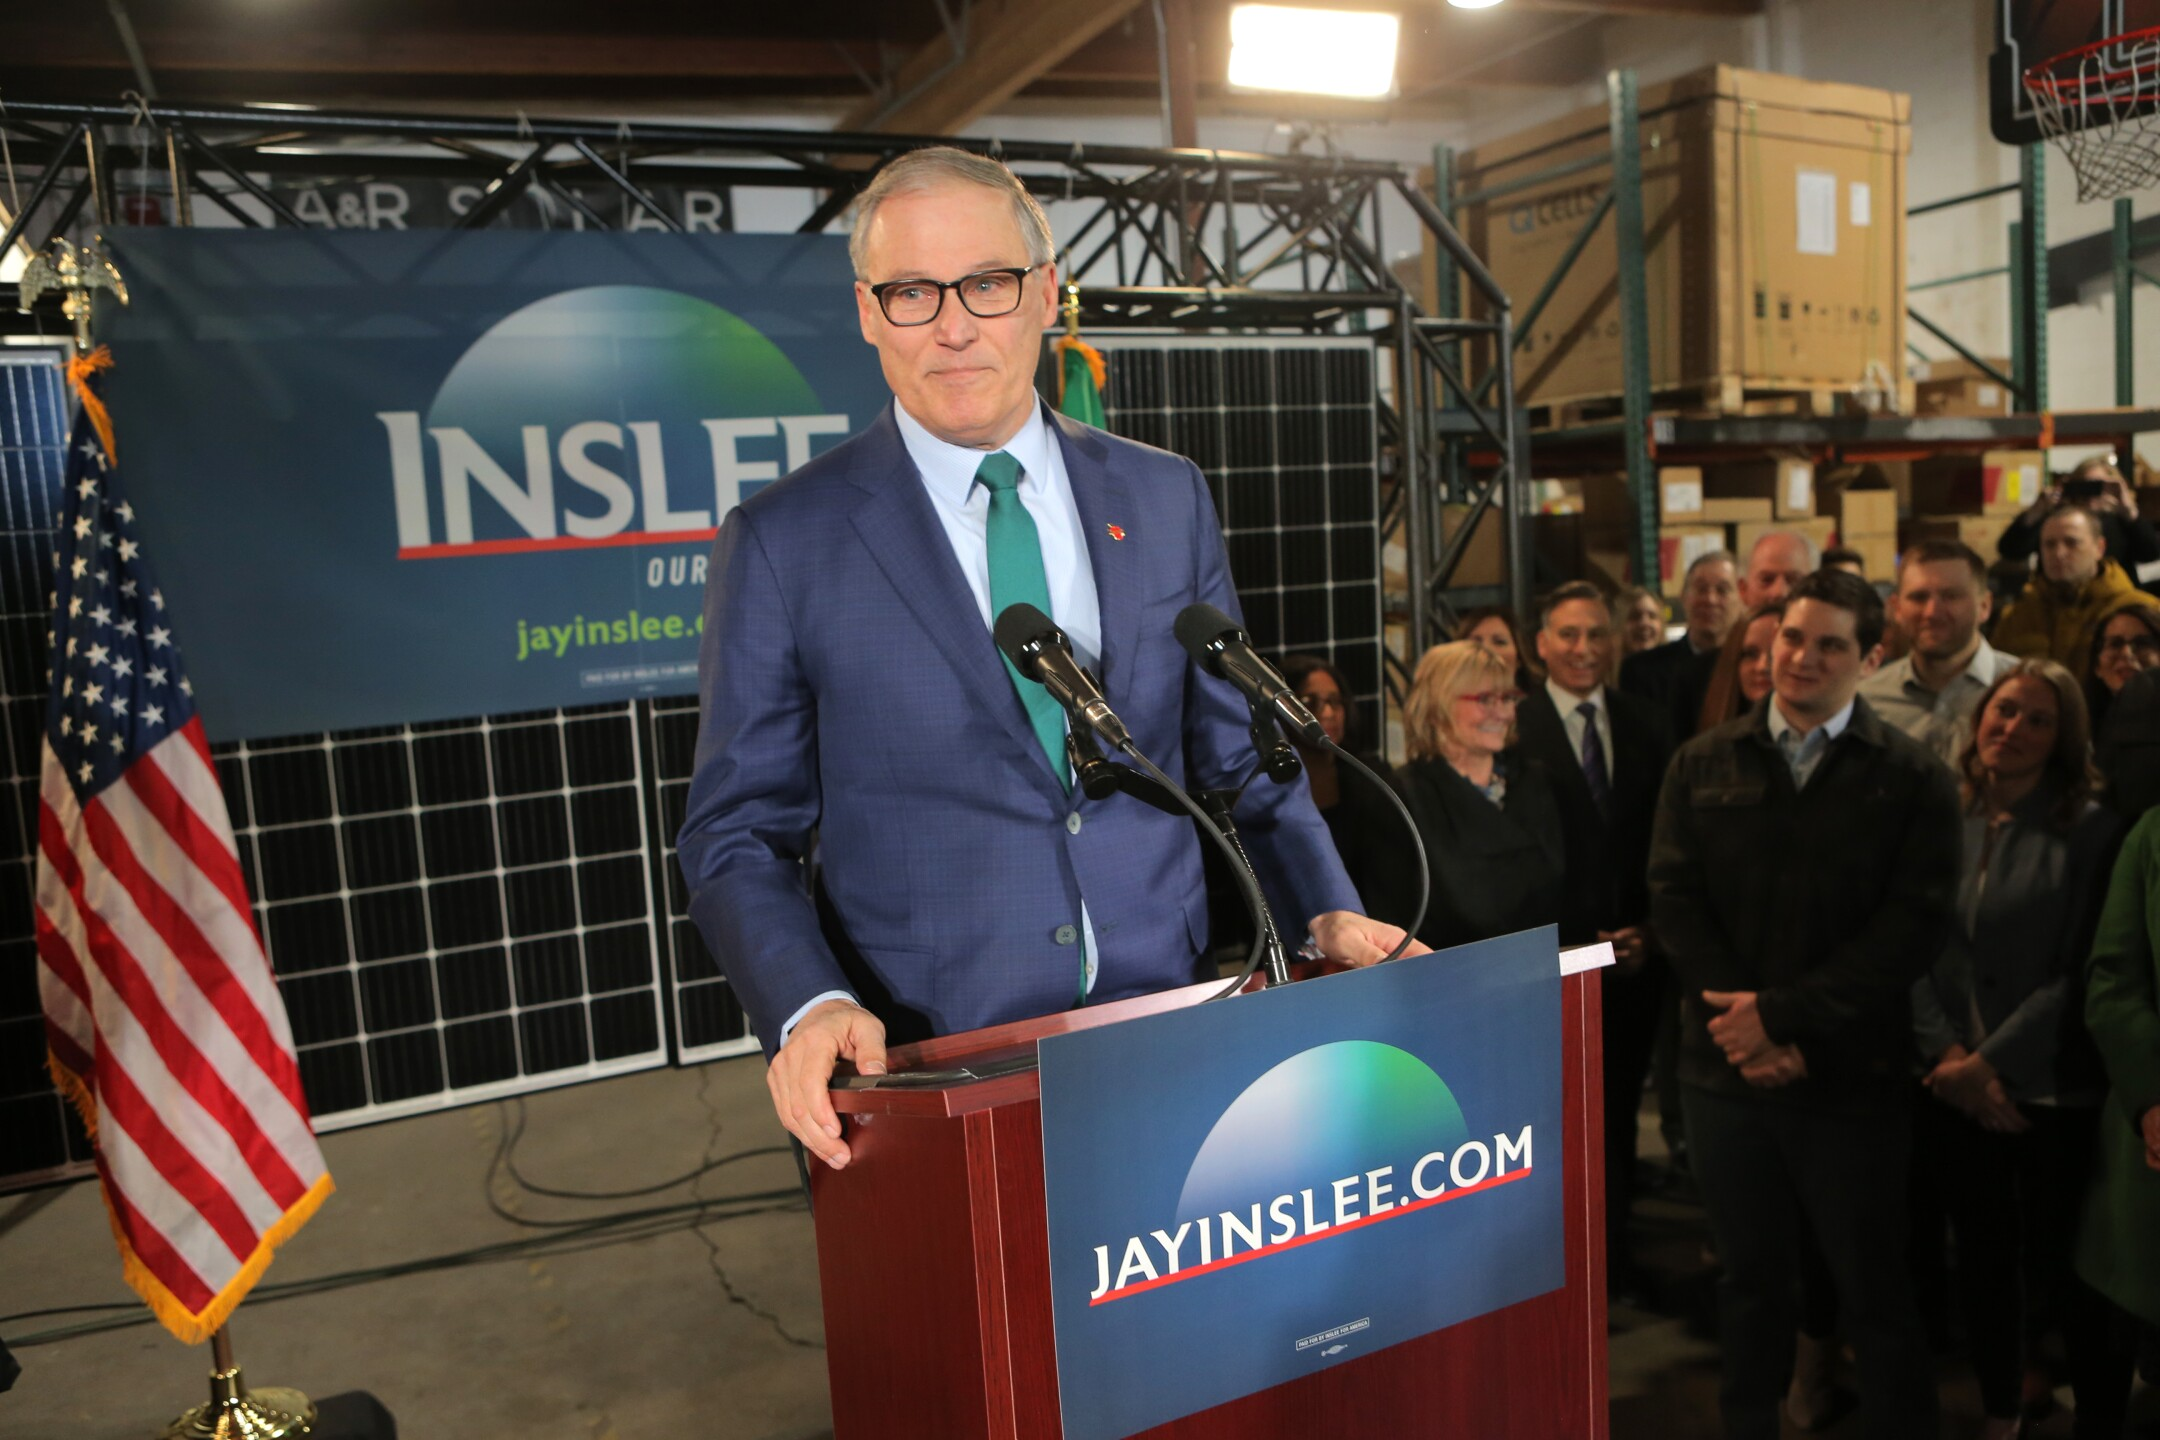 Jay Inslee is the governor of Washington. He announced his candidacy forpresident of the United States on March 1, 2019.